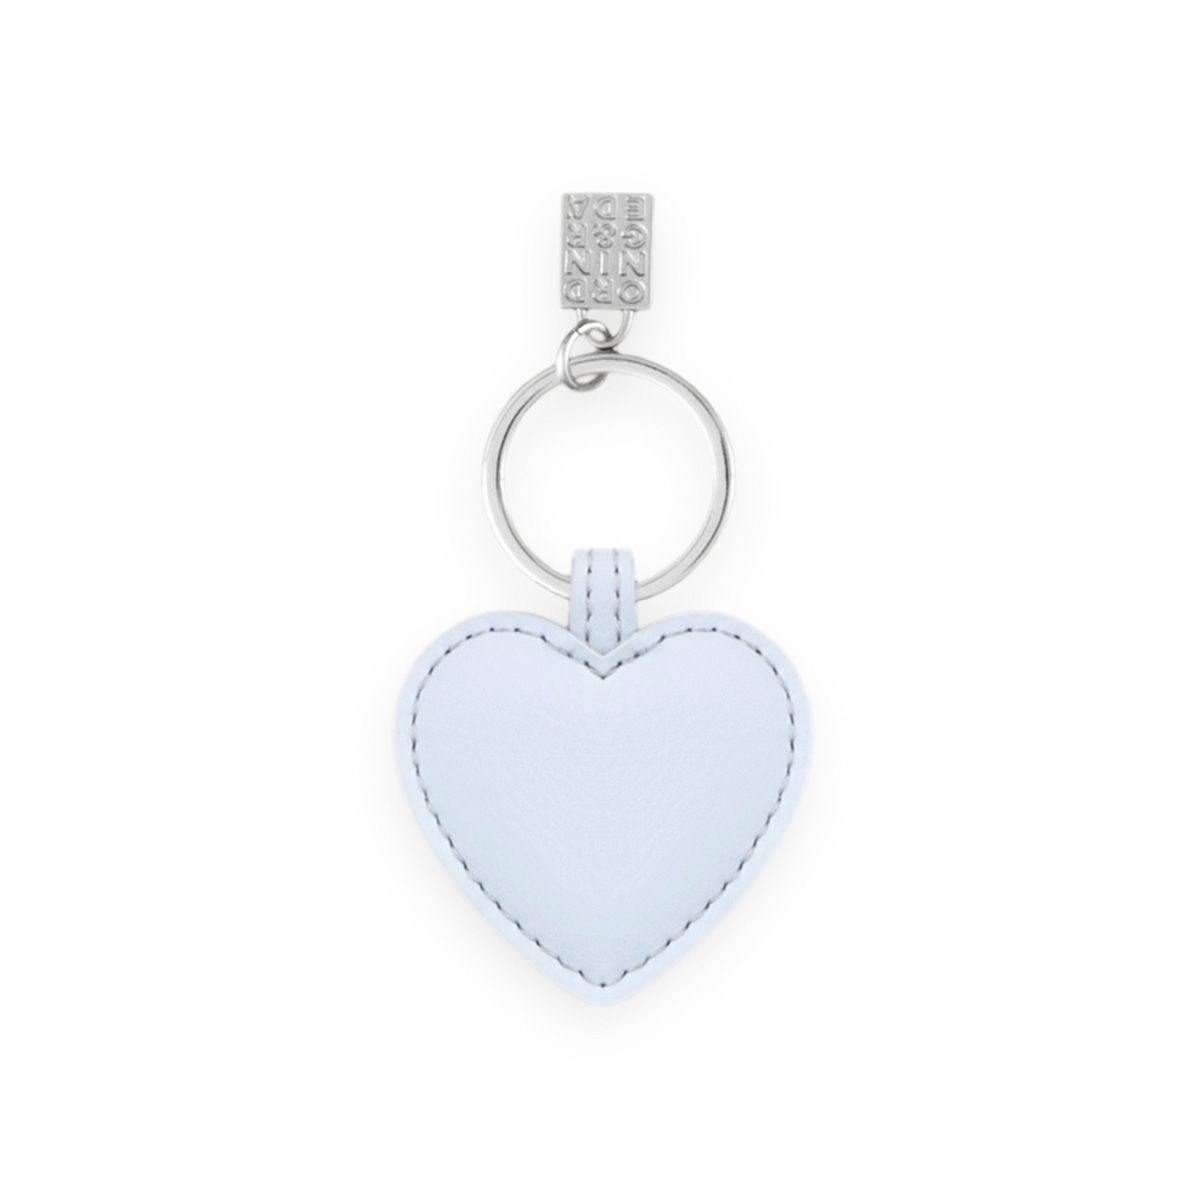 Key Ring HEART Ordning and Reda